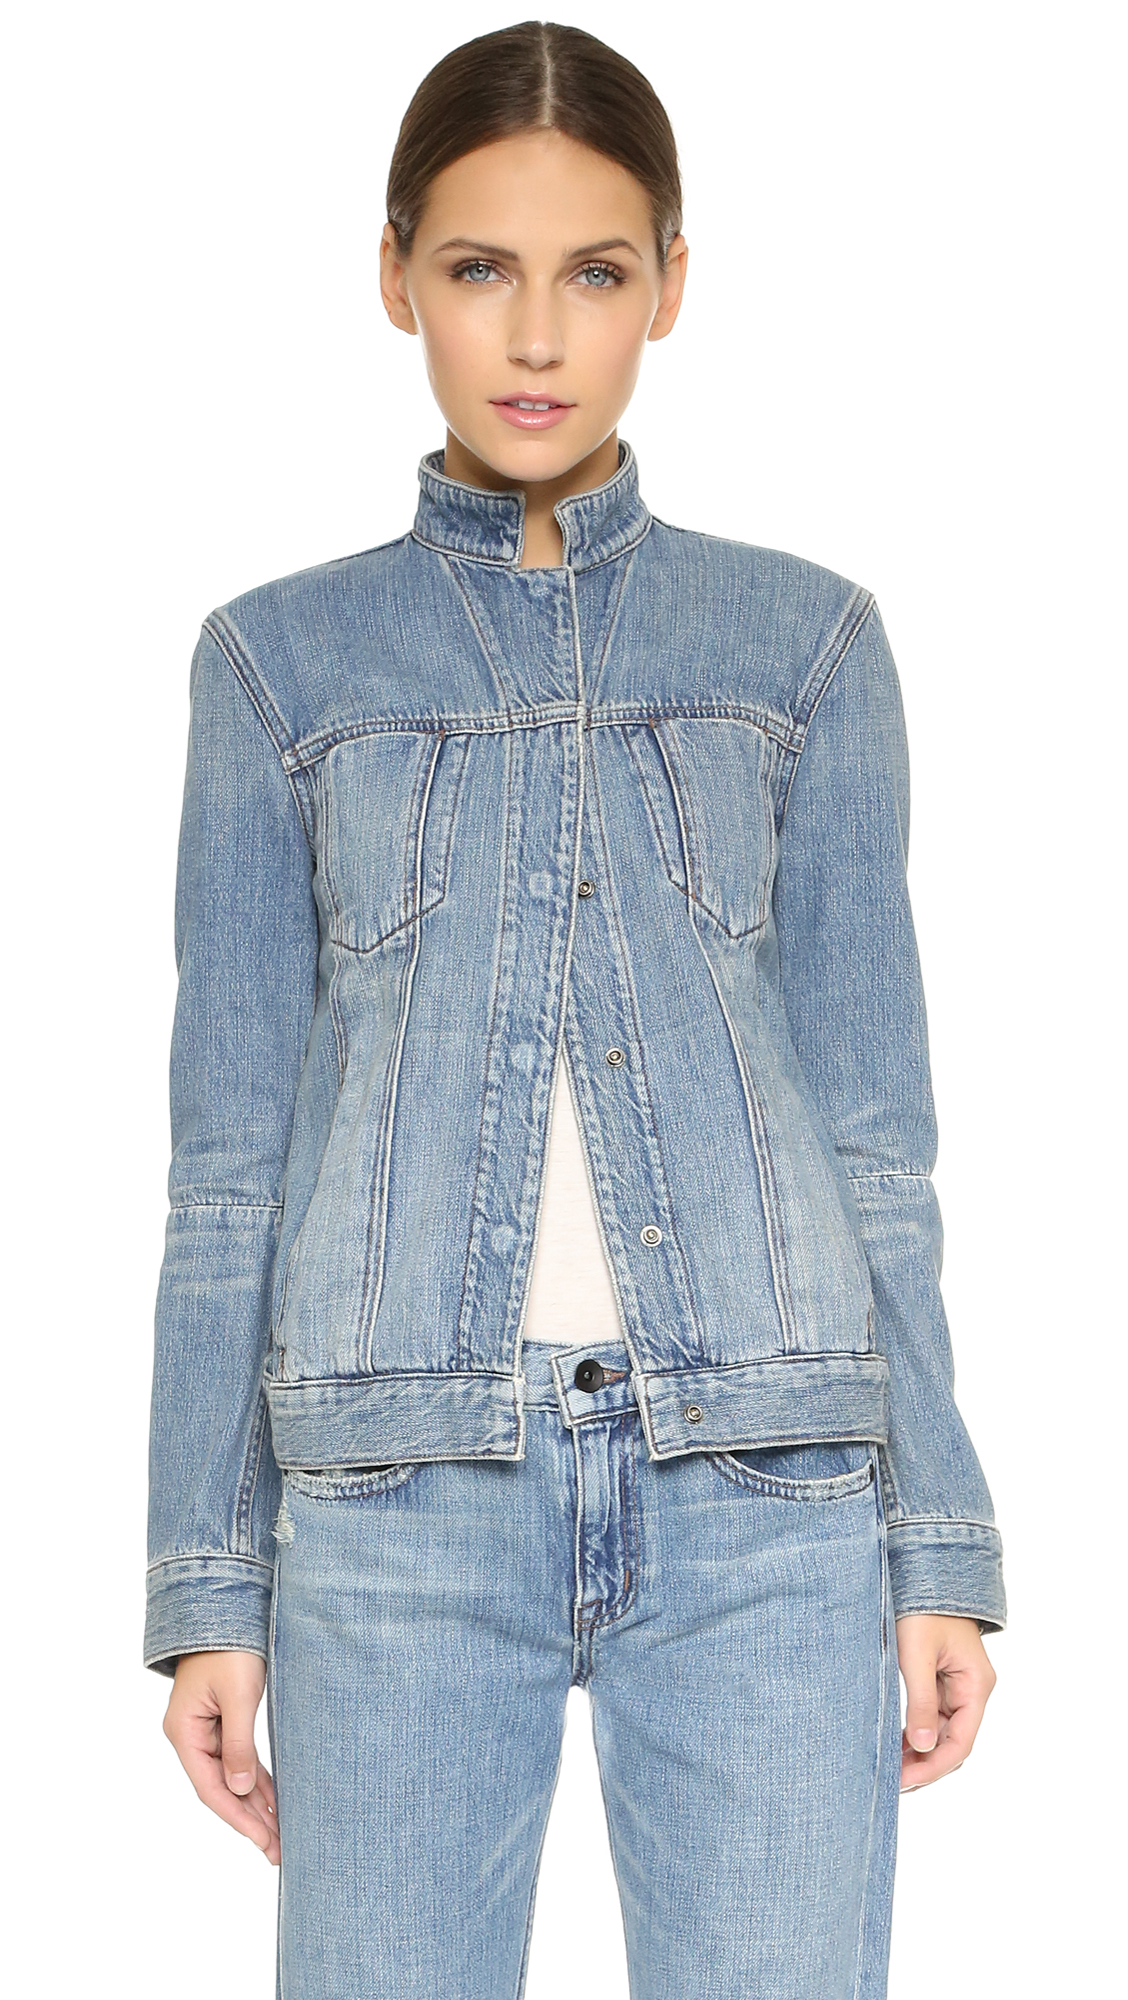 2016 Kot Ceket Modelleri ve Kombinleri - 2016-Denim-Jackets-and-Coats-For-Women-5